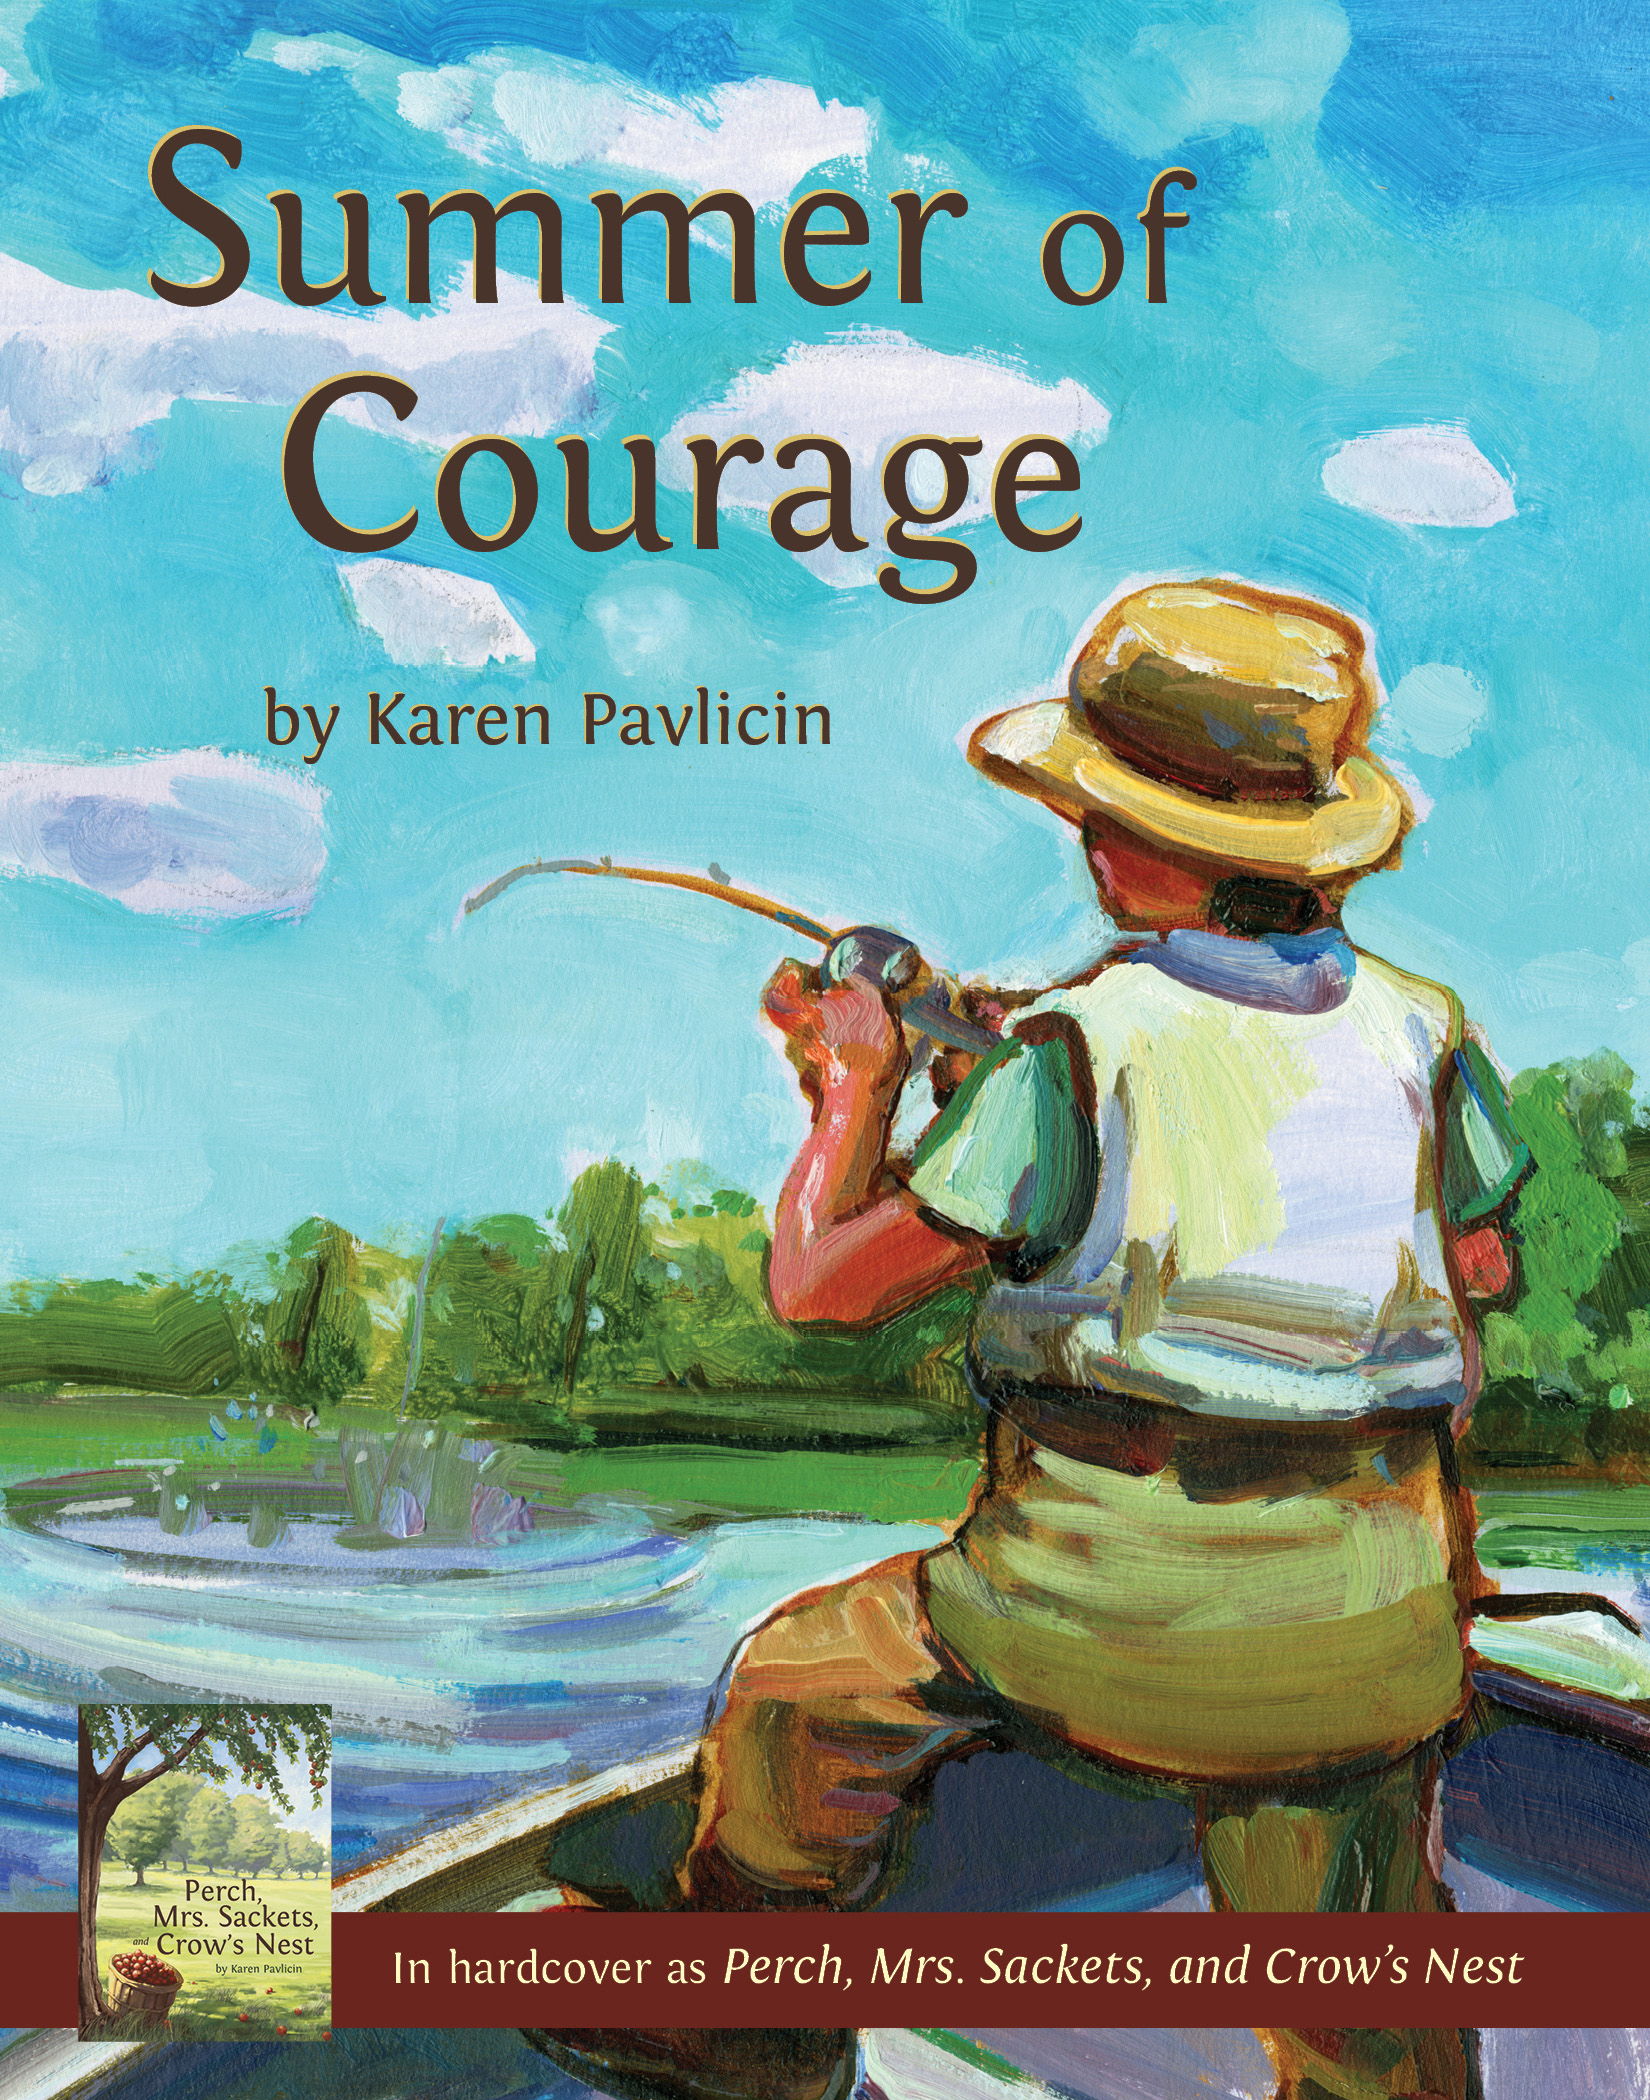 Summer of Courage by Karen Pavlicin